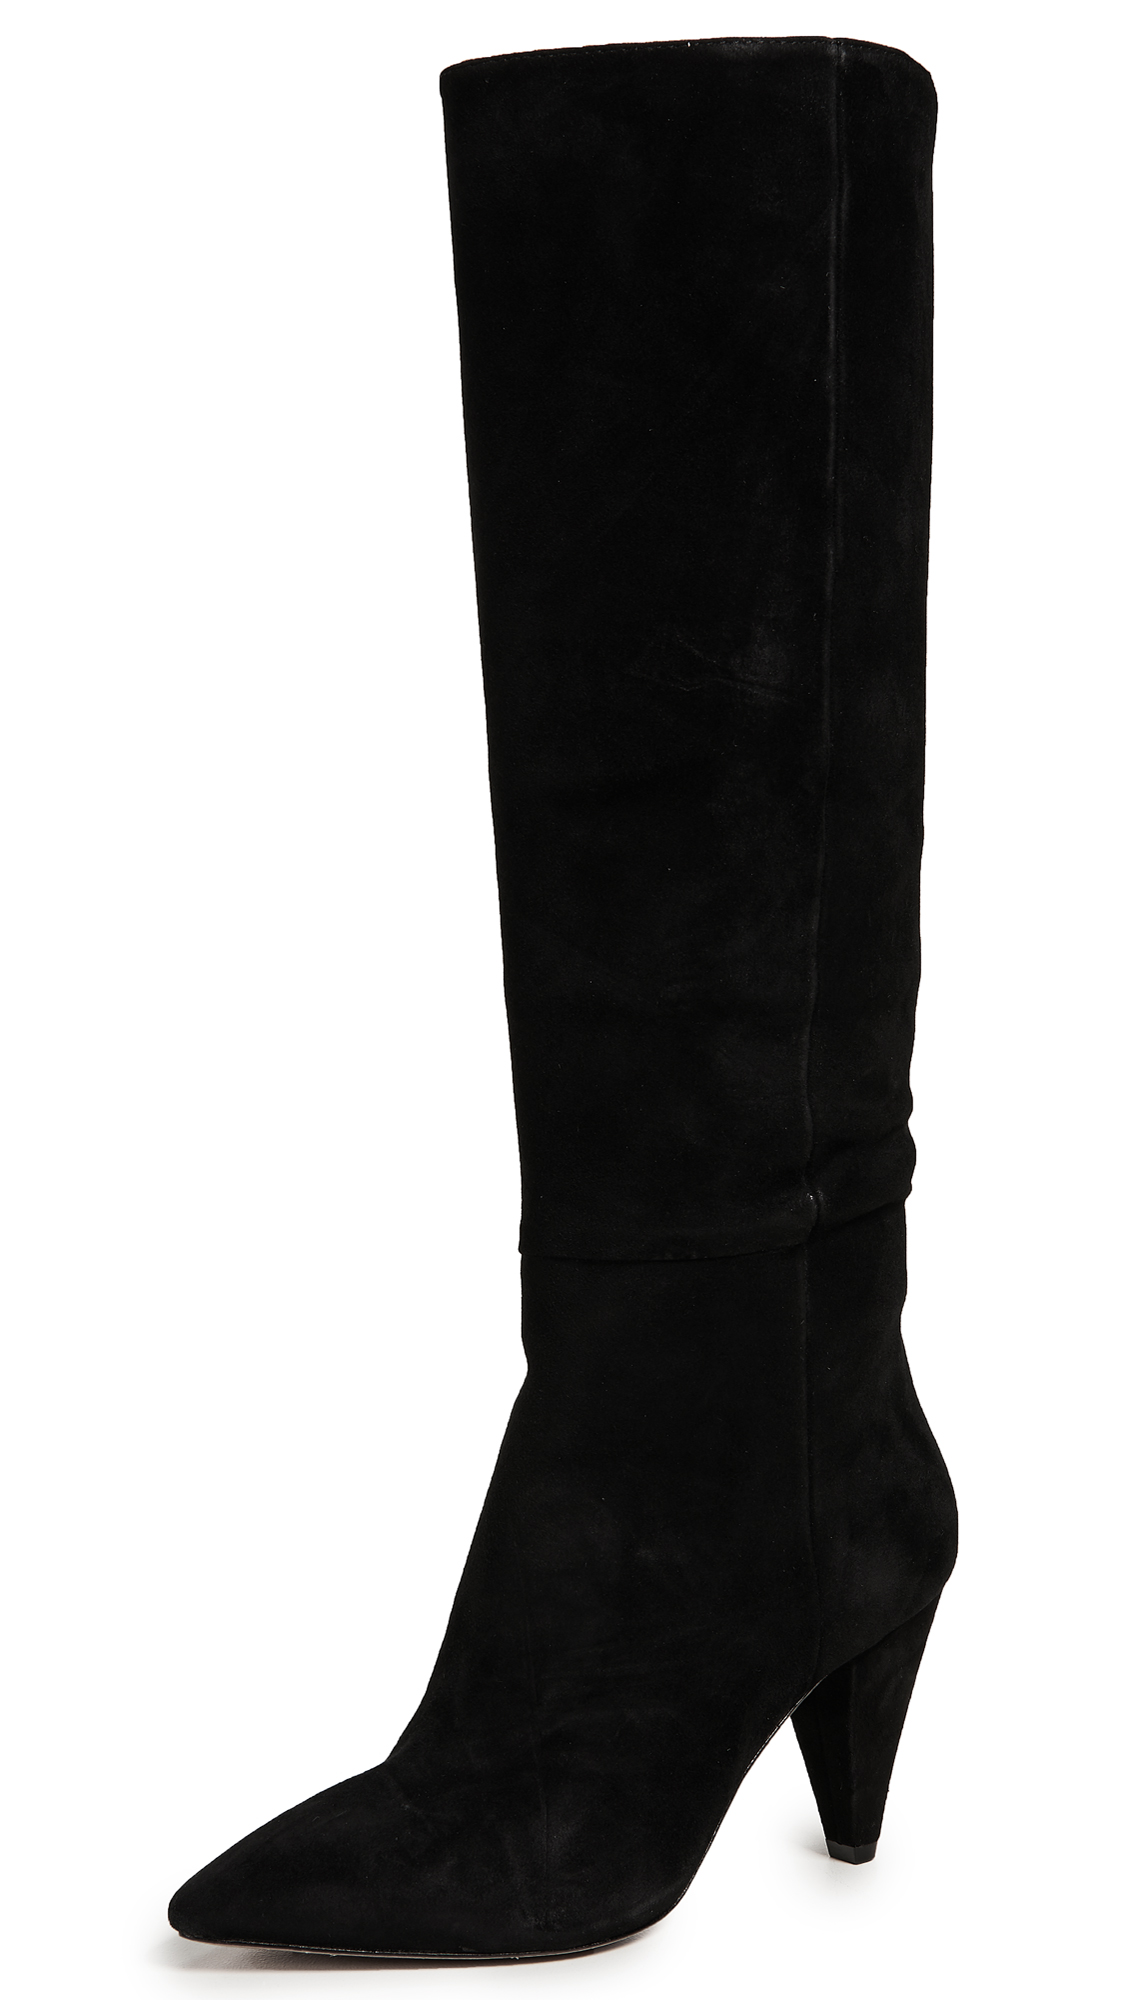 alice + olivia Rosslyn Boots - Black